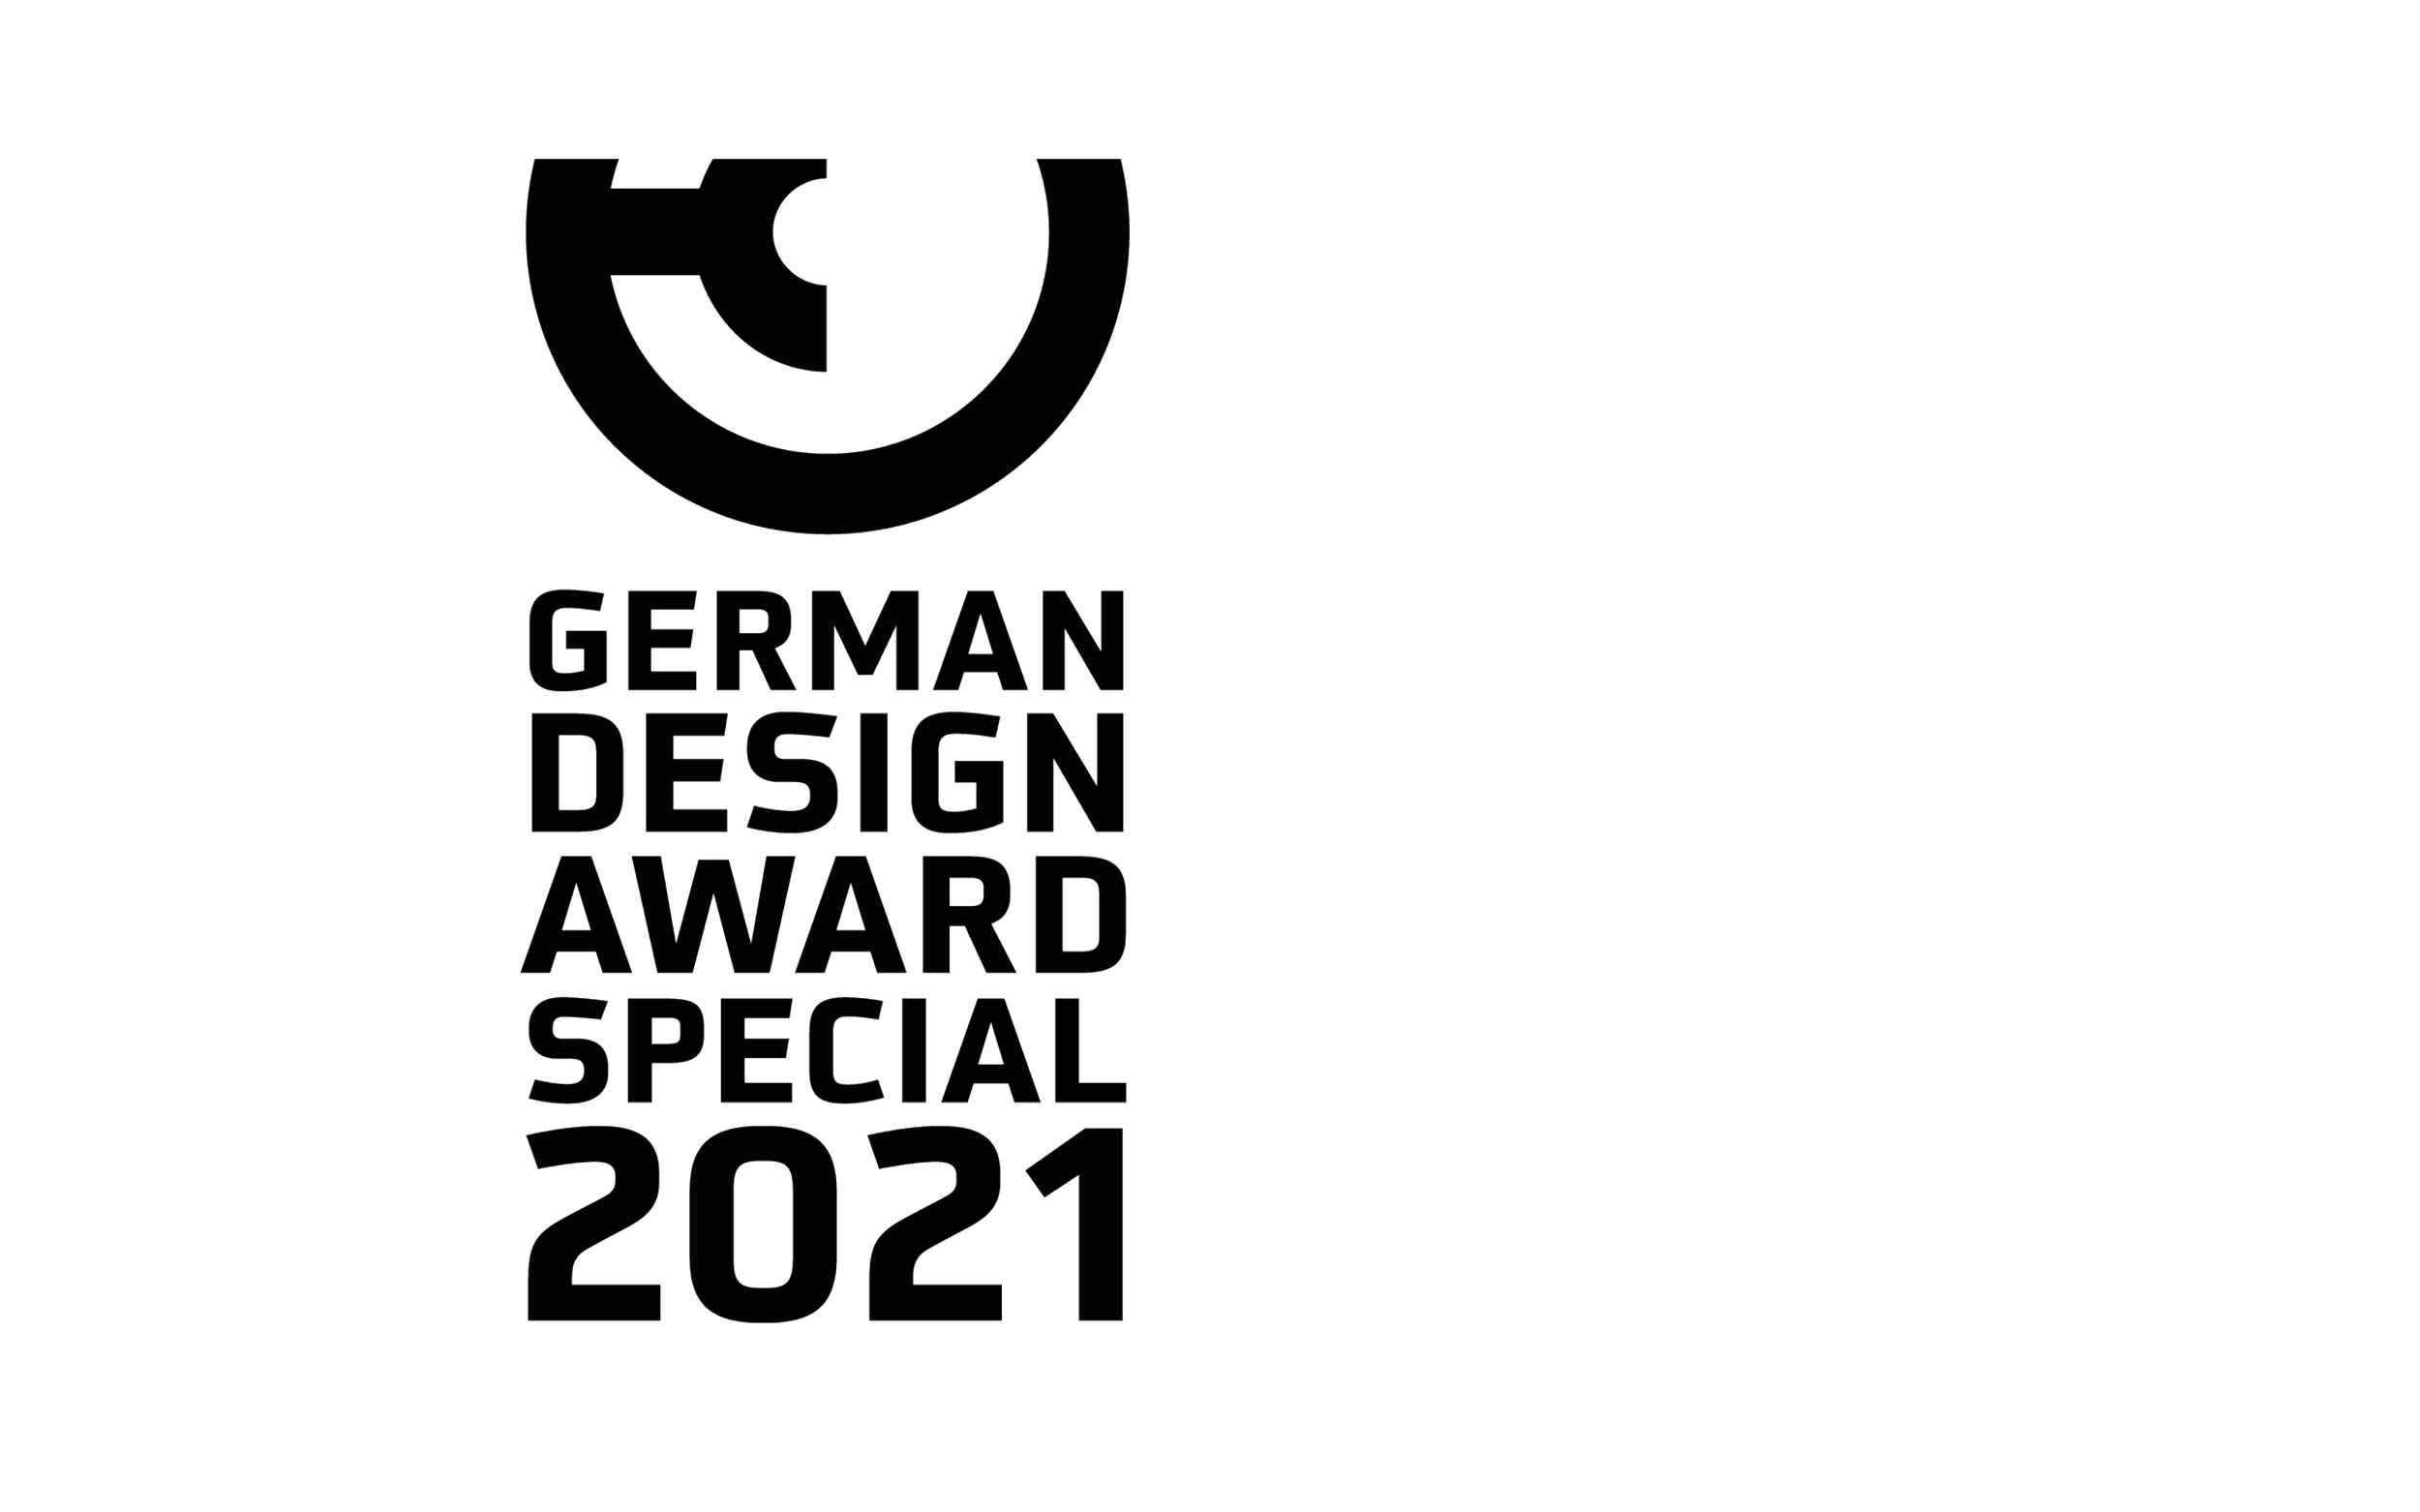 German Design Award Winner Excellent Architecture 2021 FELIX SCHWAKE 10